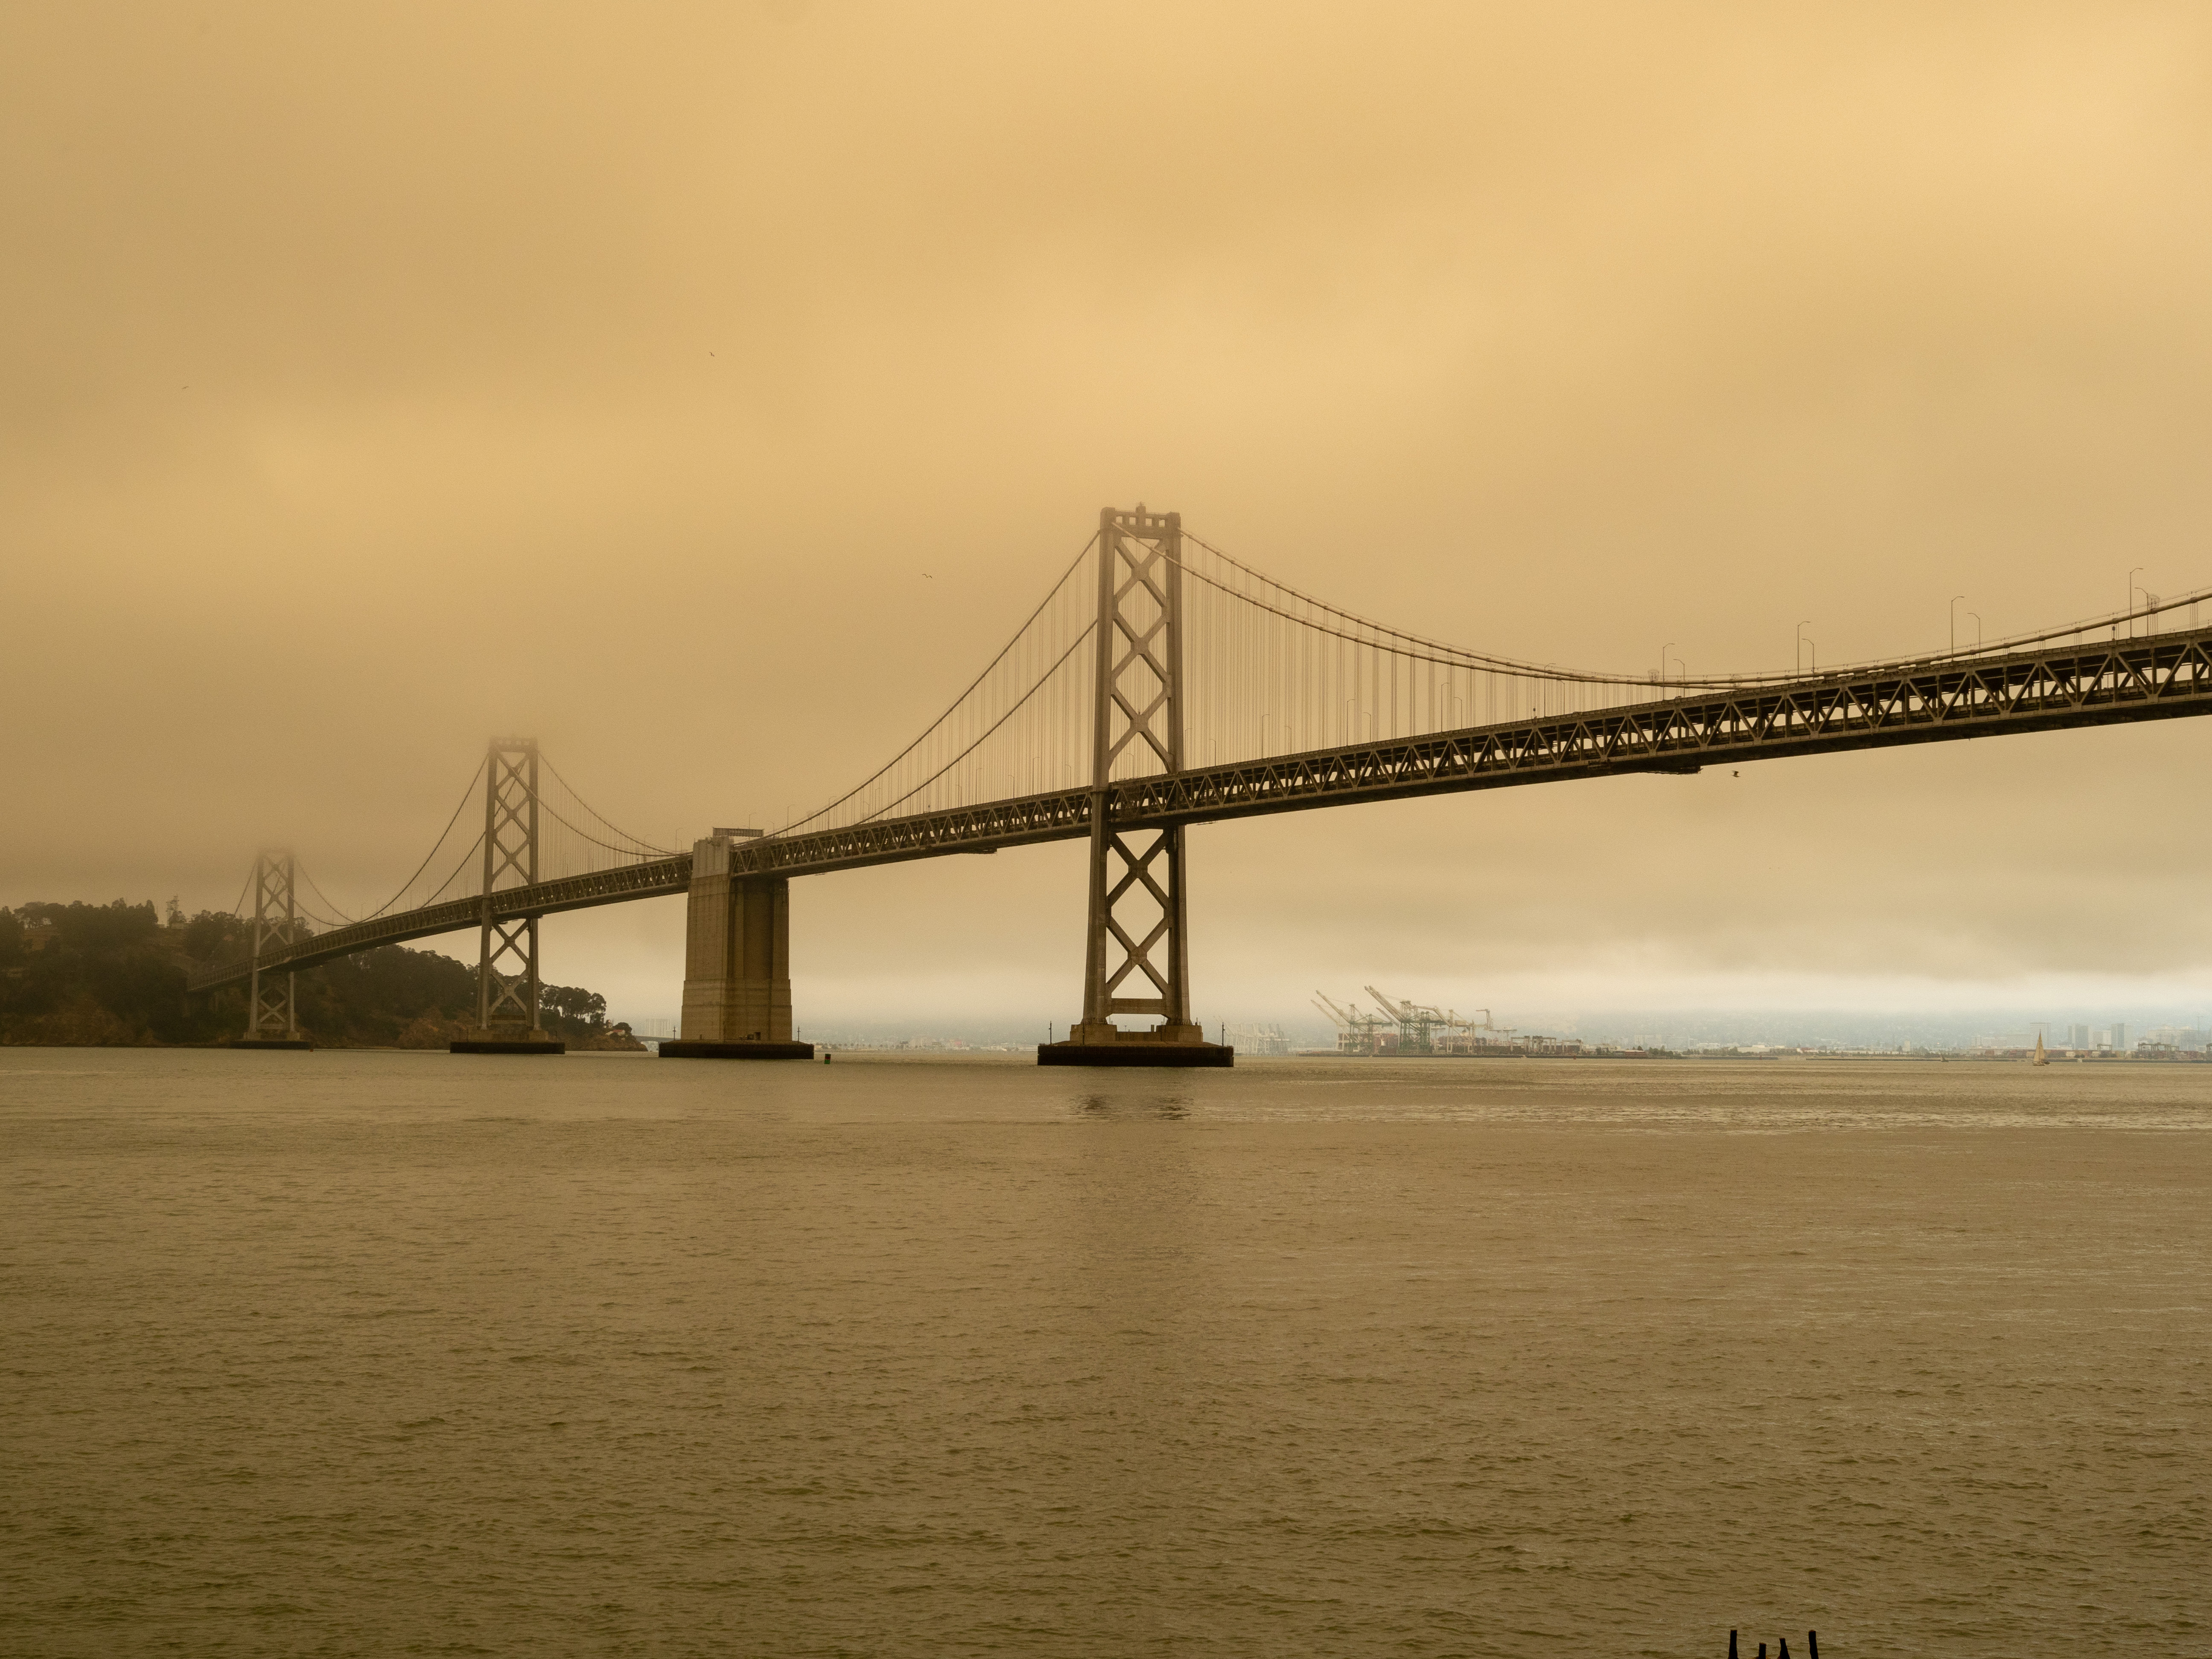 A picture of Golden Gate bridge with smoke from our nation's wildfires.